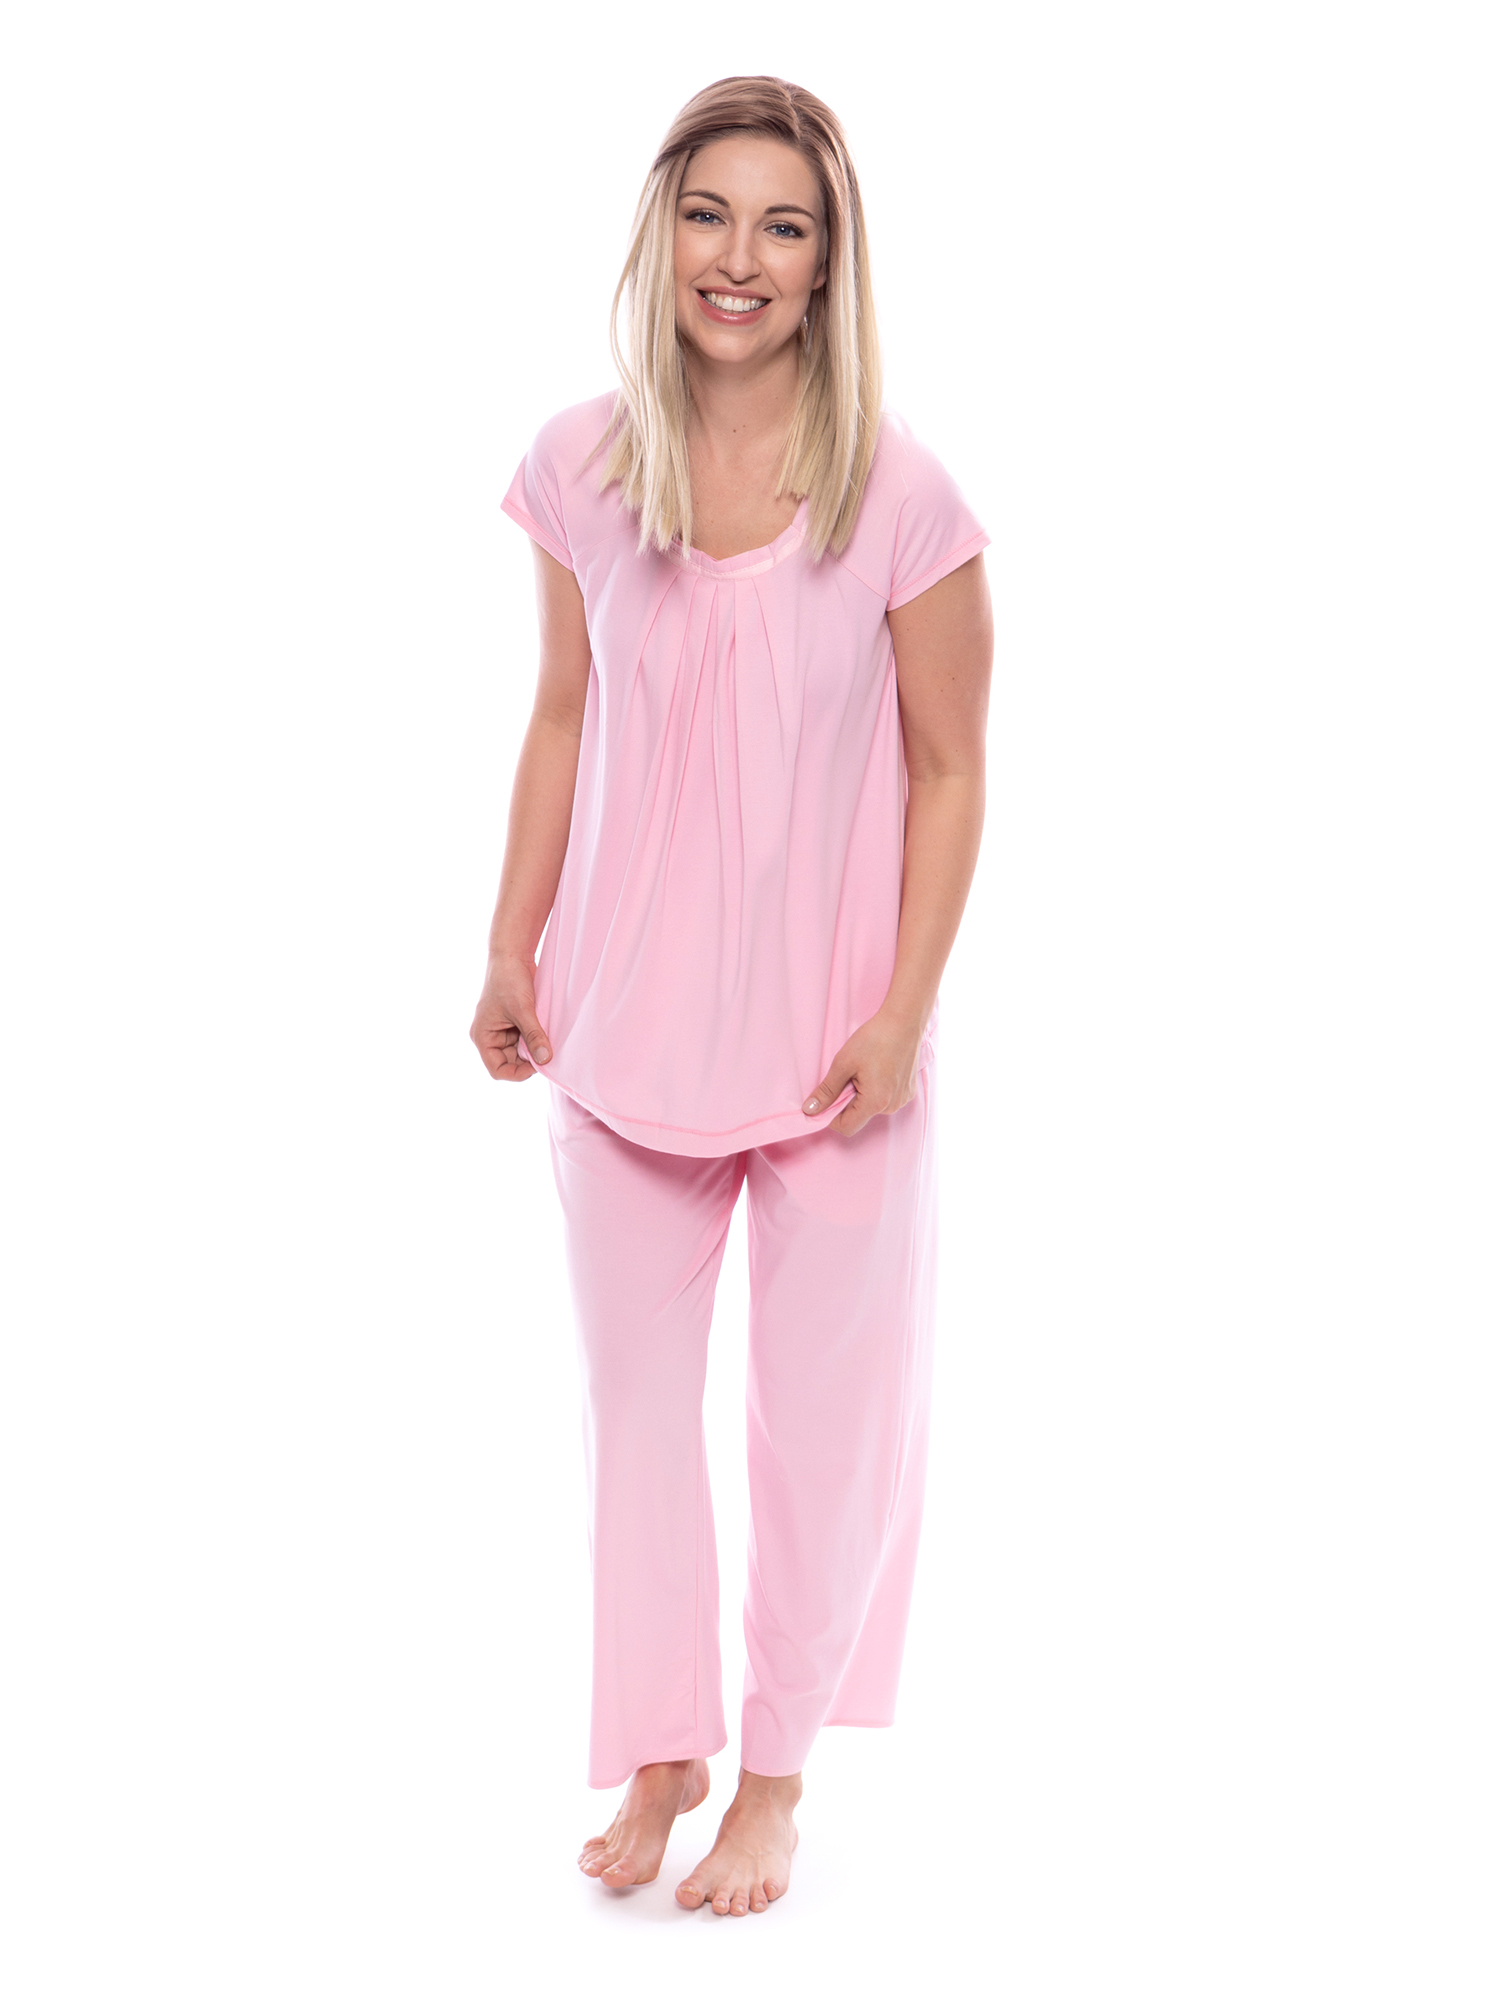 Women s Pajamas in Bamboo Viscose (Bamboo Bliss) Cozy Sleepwear Set ... 592be9441